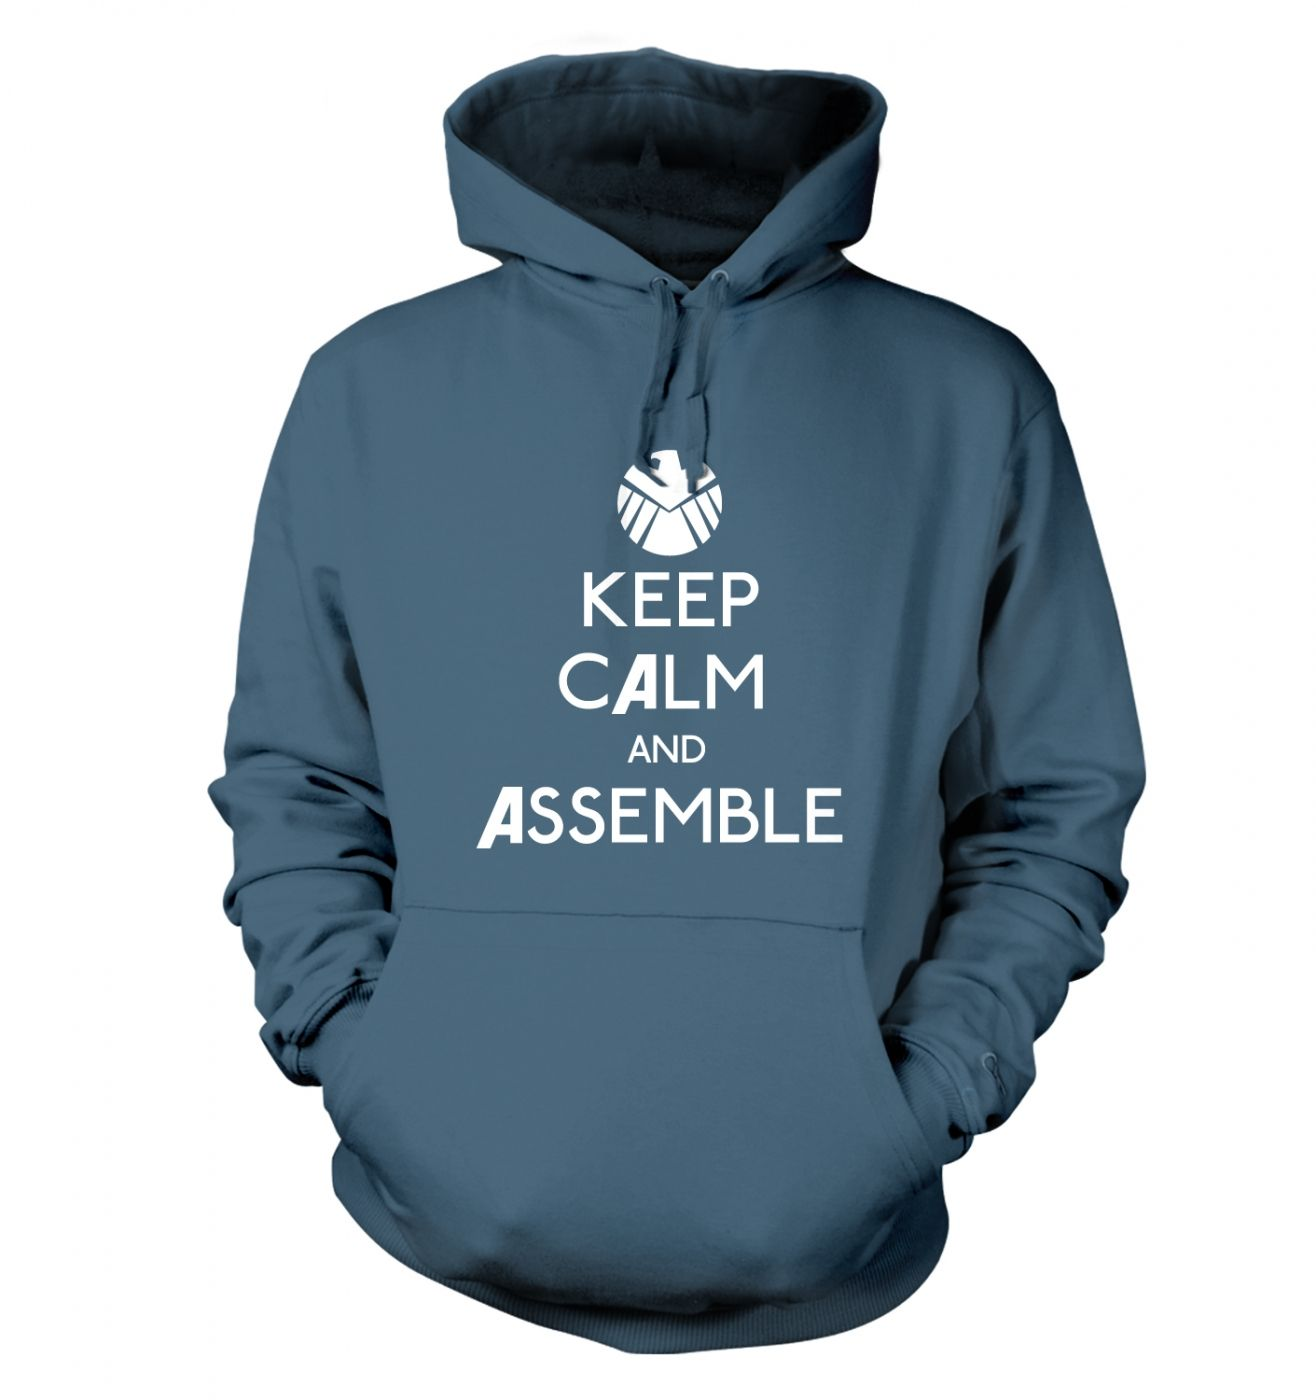 Keep Calm And Assemble hoodie